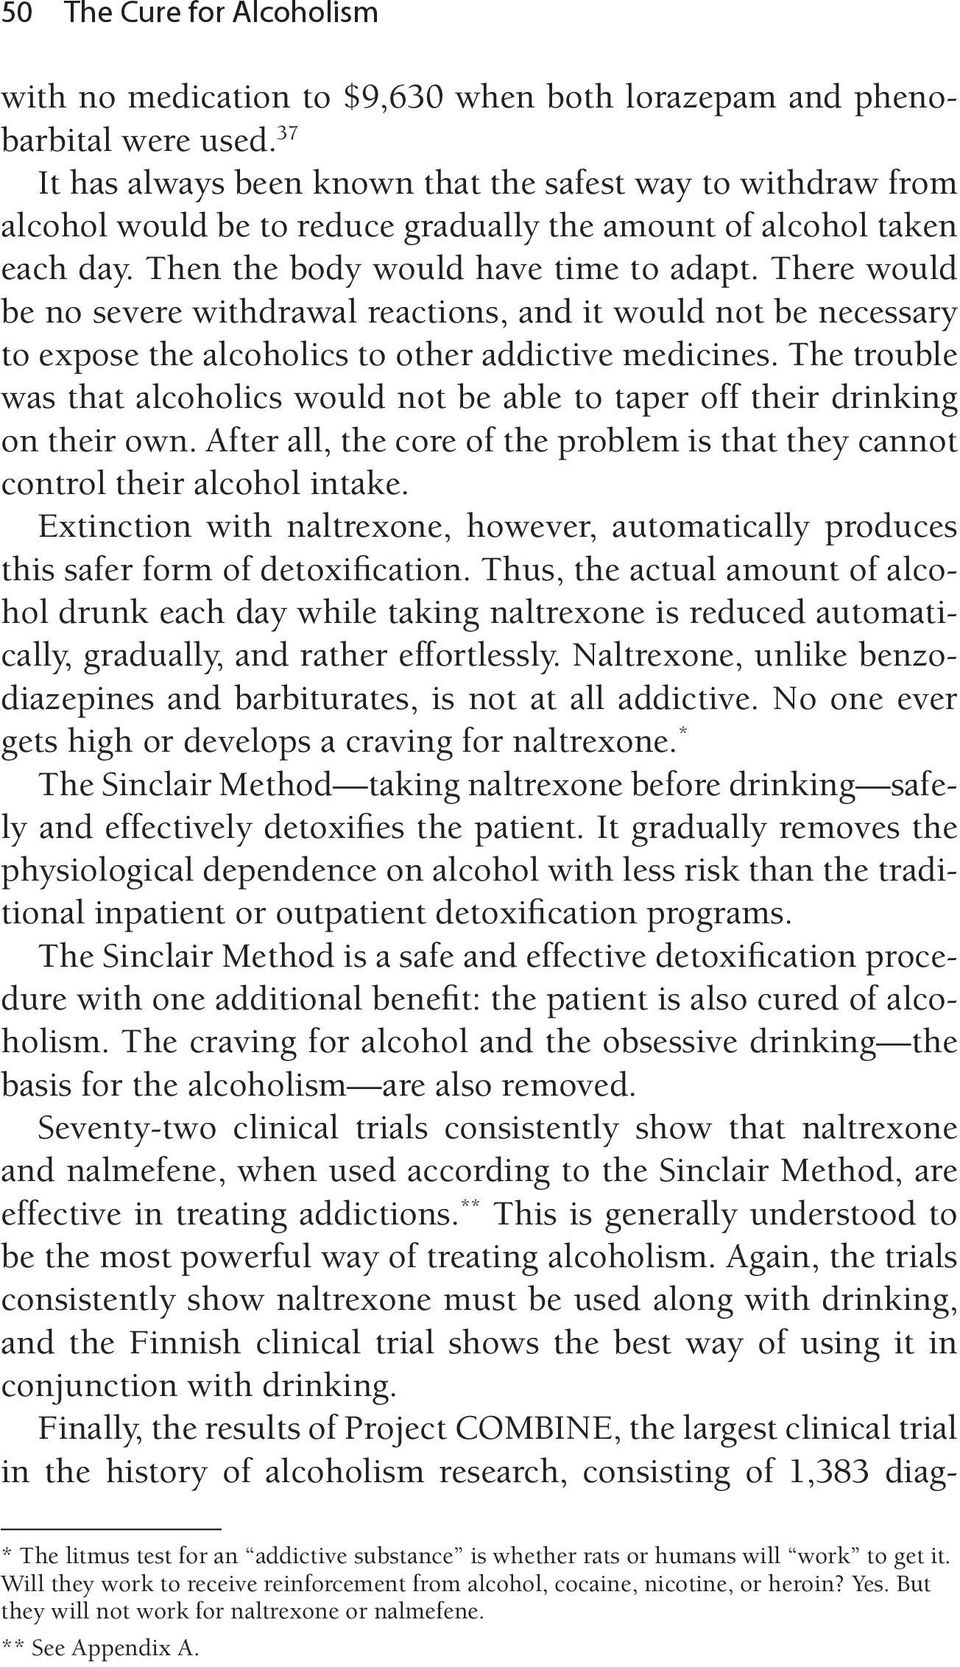 There would be no severe withdrawal reactions, and it would not be necessary to expose the alcoholics to other addictive medicines.